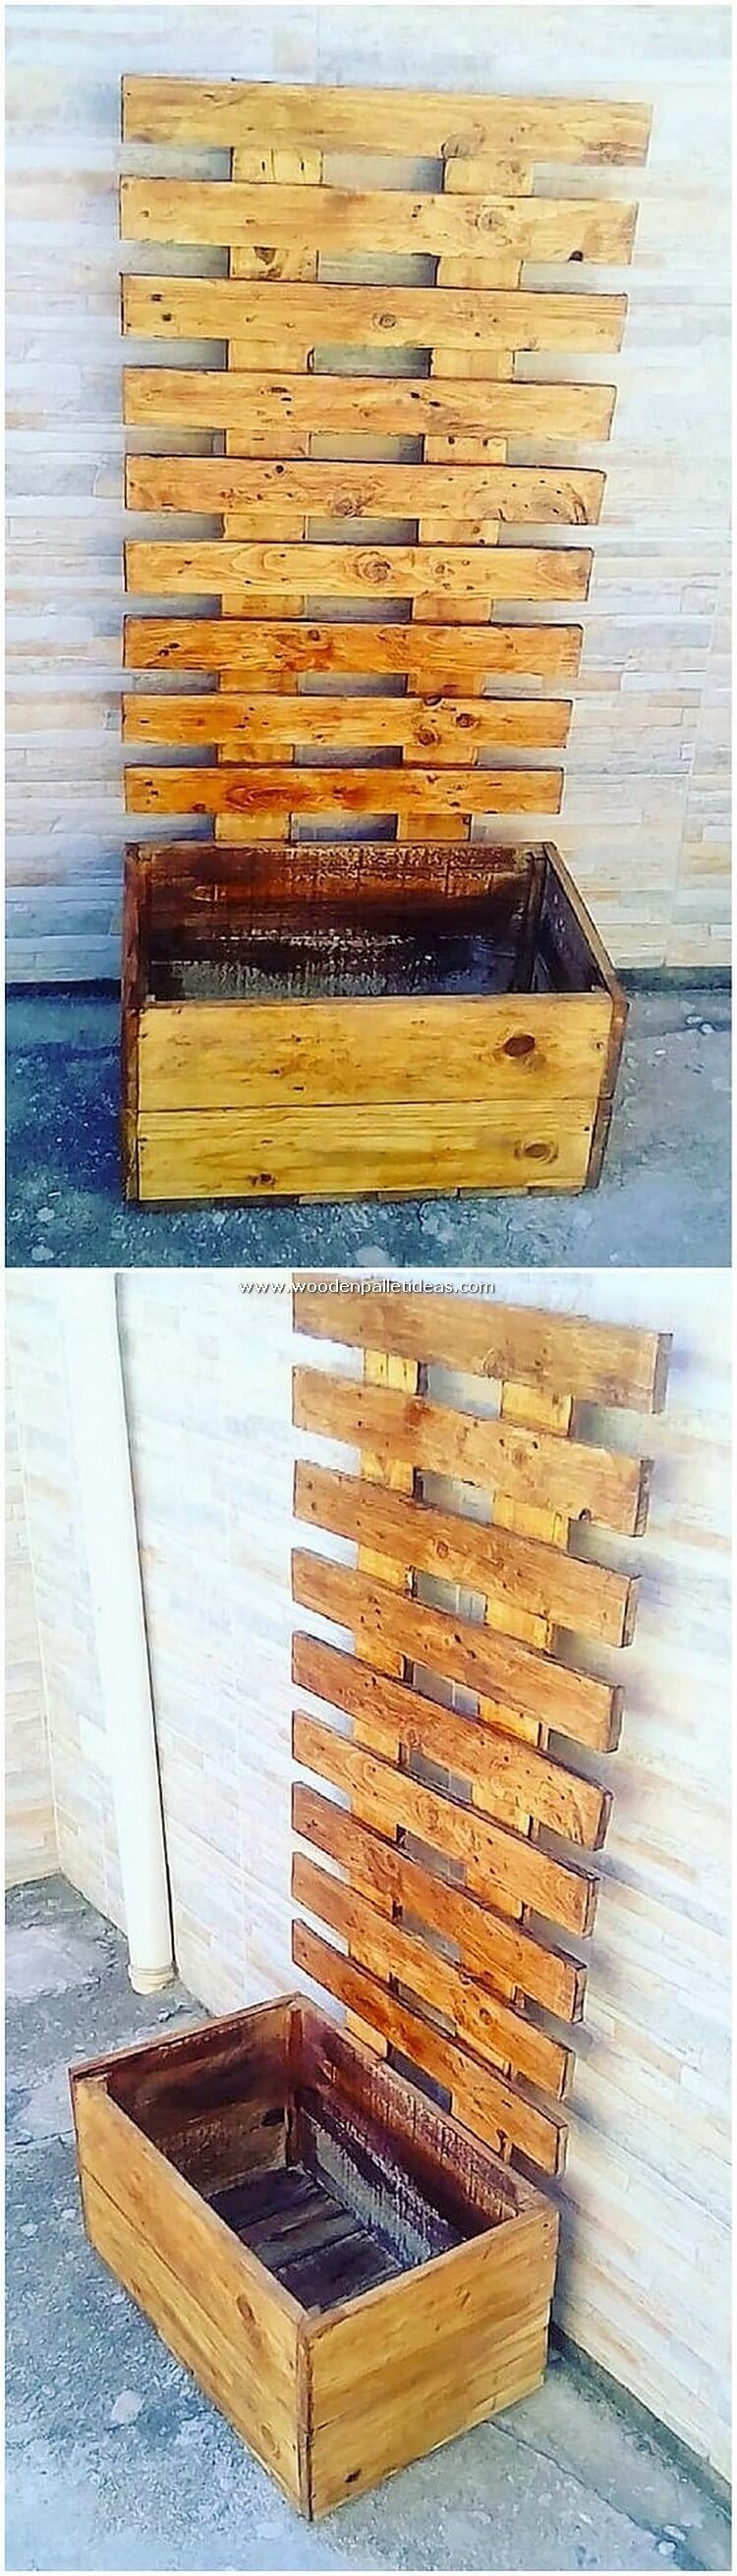 Wood-Pallet-Table-Planter